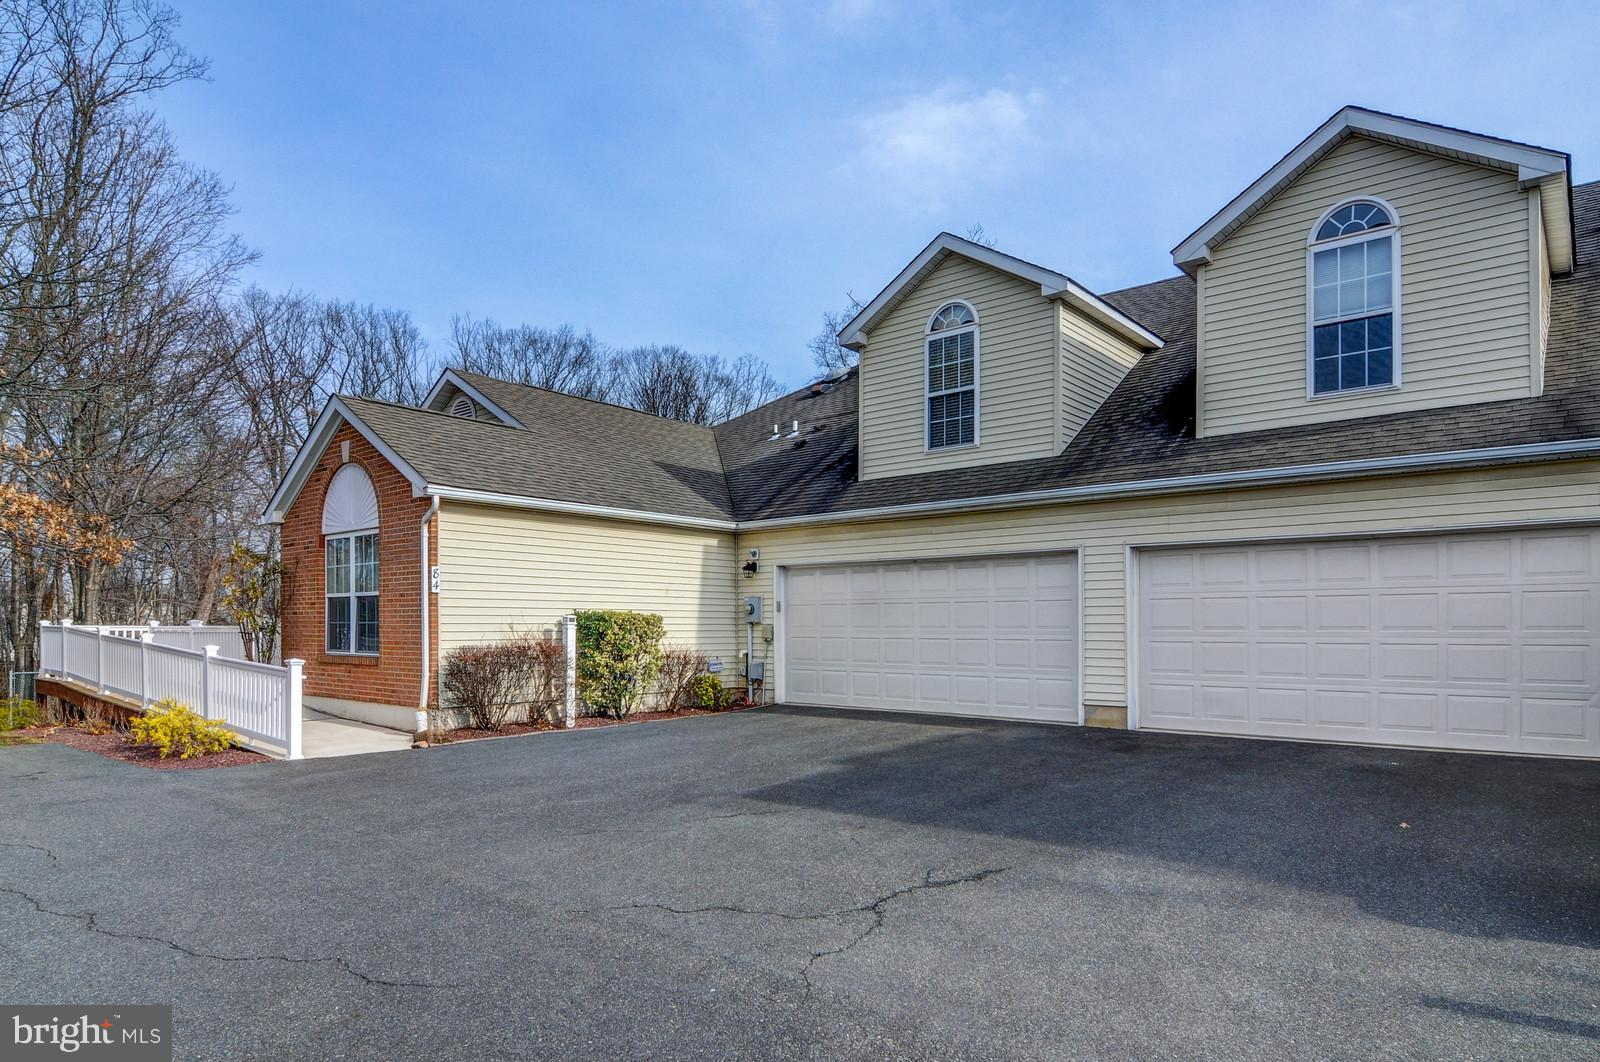 84 GABRIEL COURT, HILLSBOROUGH, NJ 08844